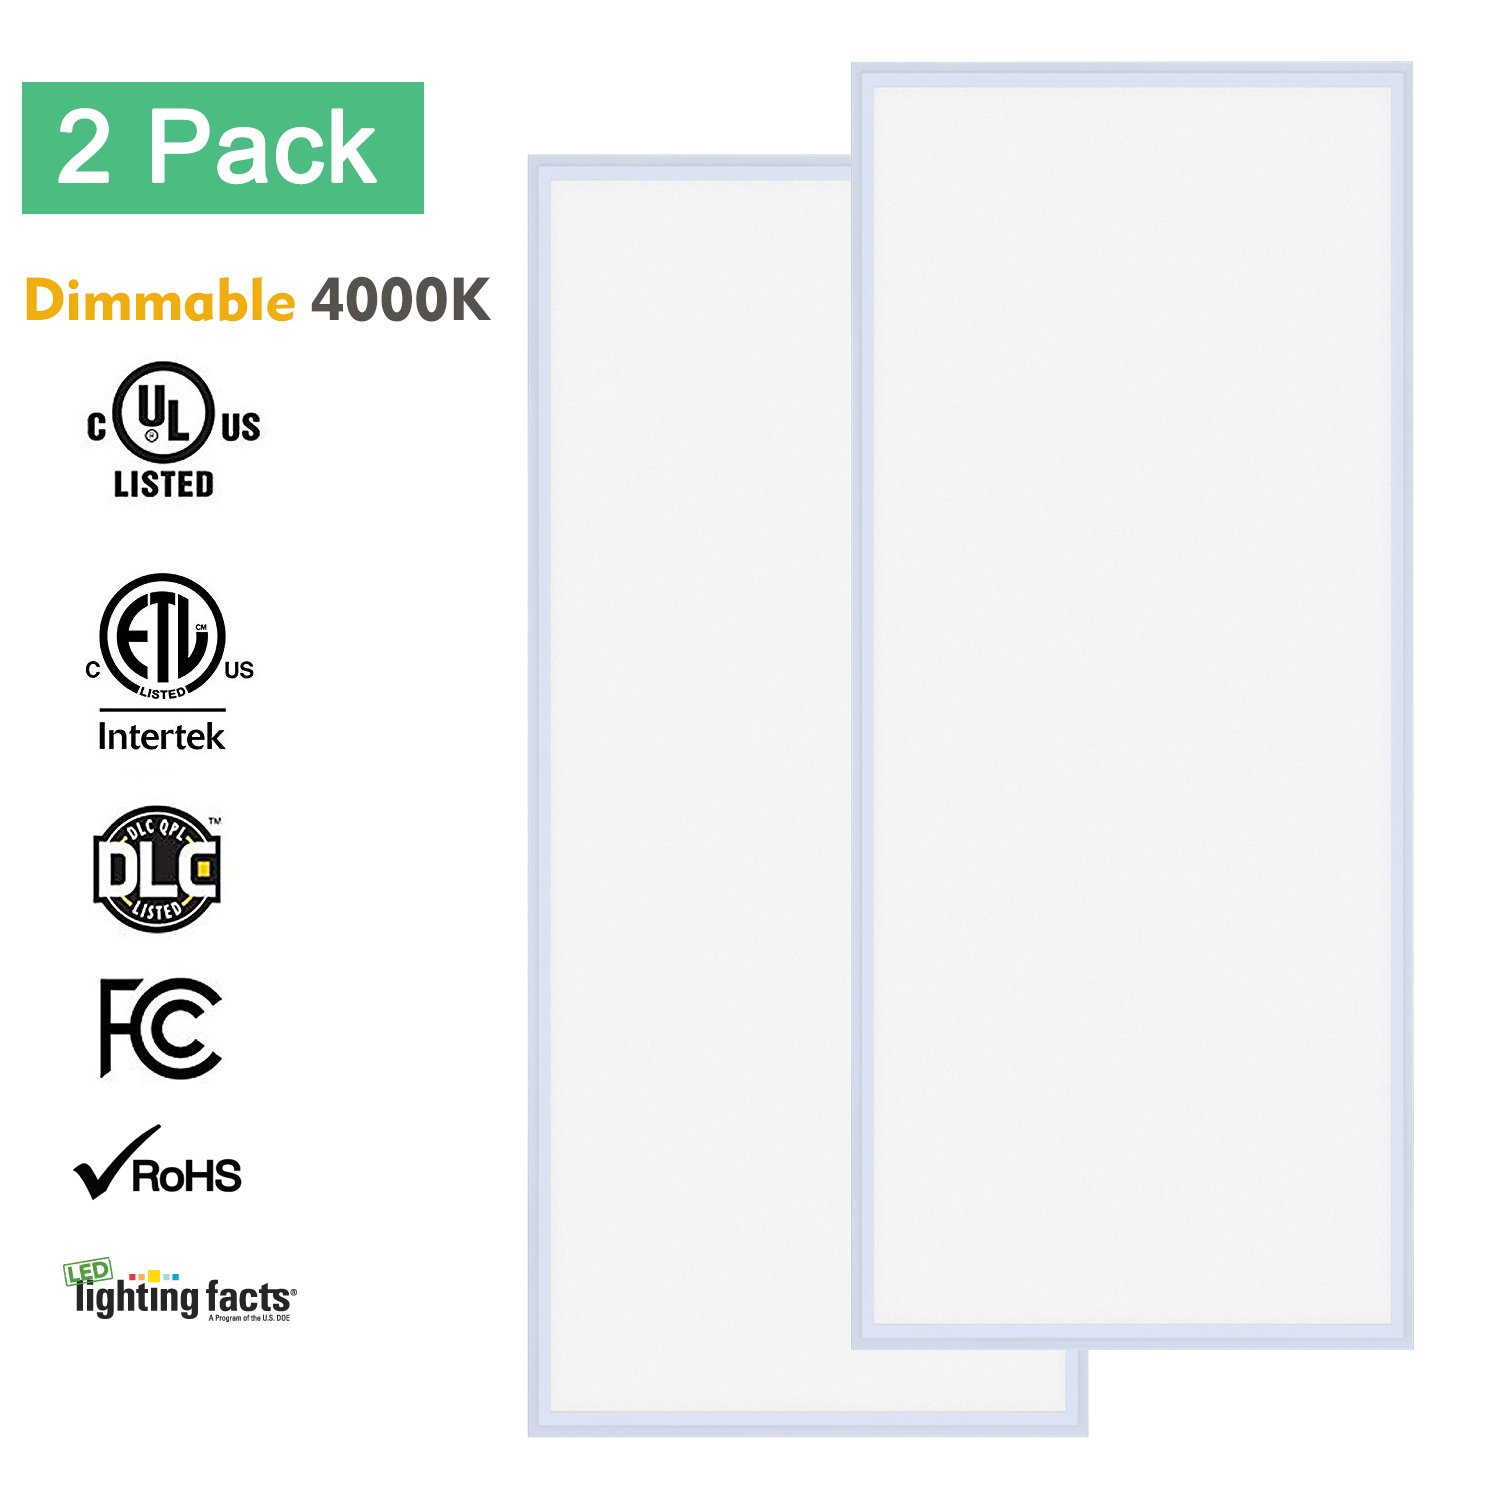 LED Flat Panel Light 2x4, Allsmartlife 2x4 LED Panel Light Fixture Dimmable 4000K((Bright White), 0-10V, 60W, 6215Lumens, 100-277Vac - DLC-Qualified and Lighting Facts